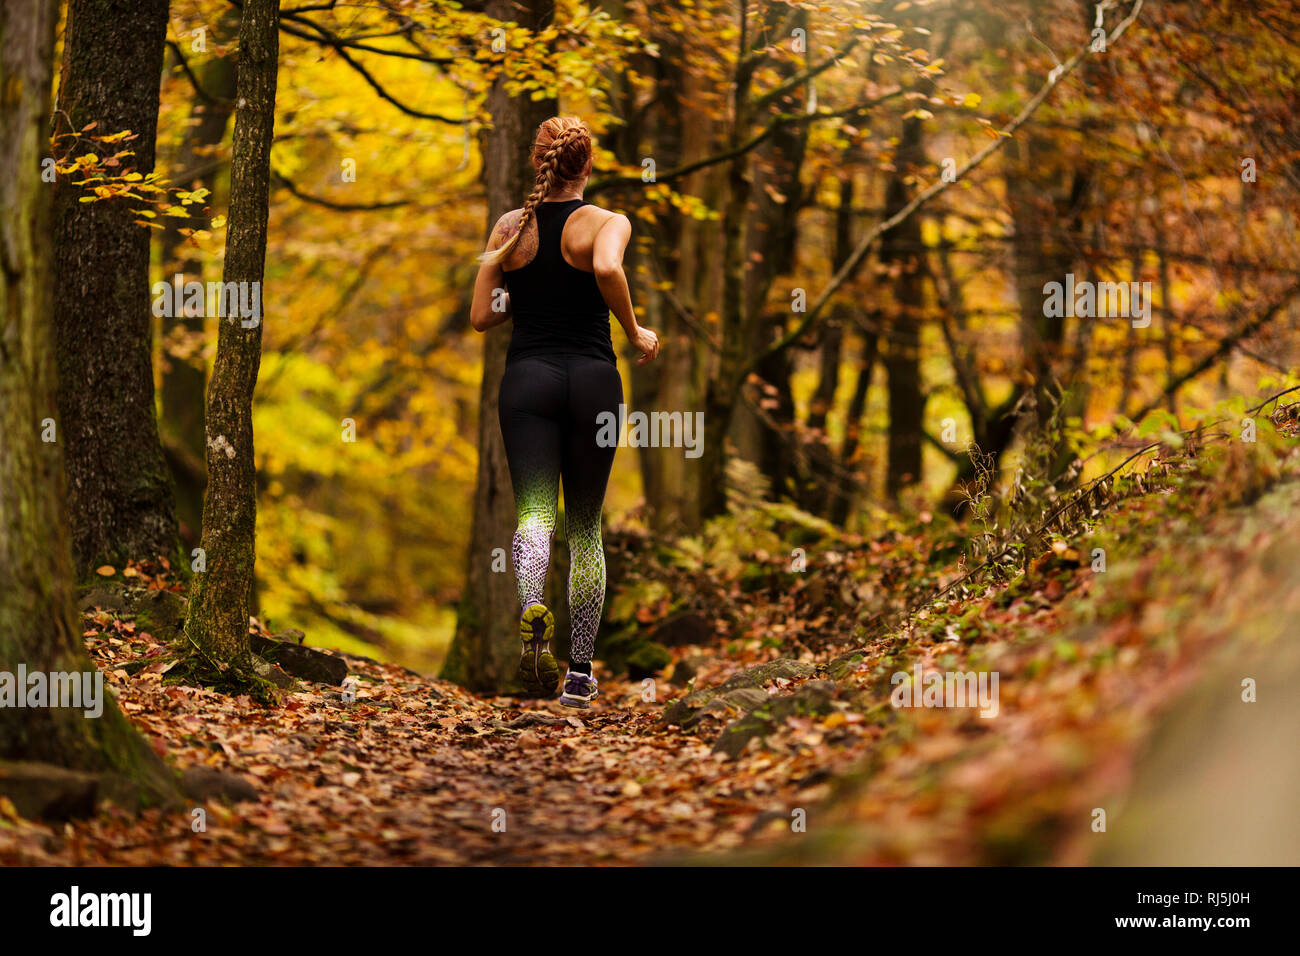 Young woman running in forest Stock Photo